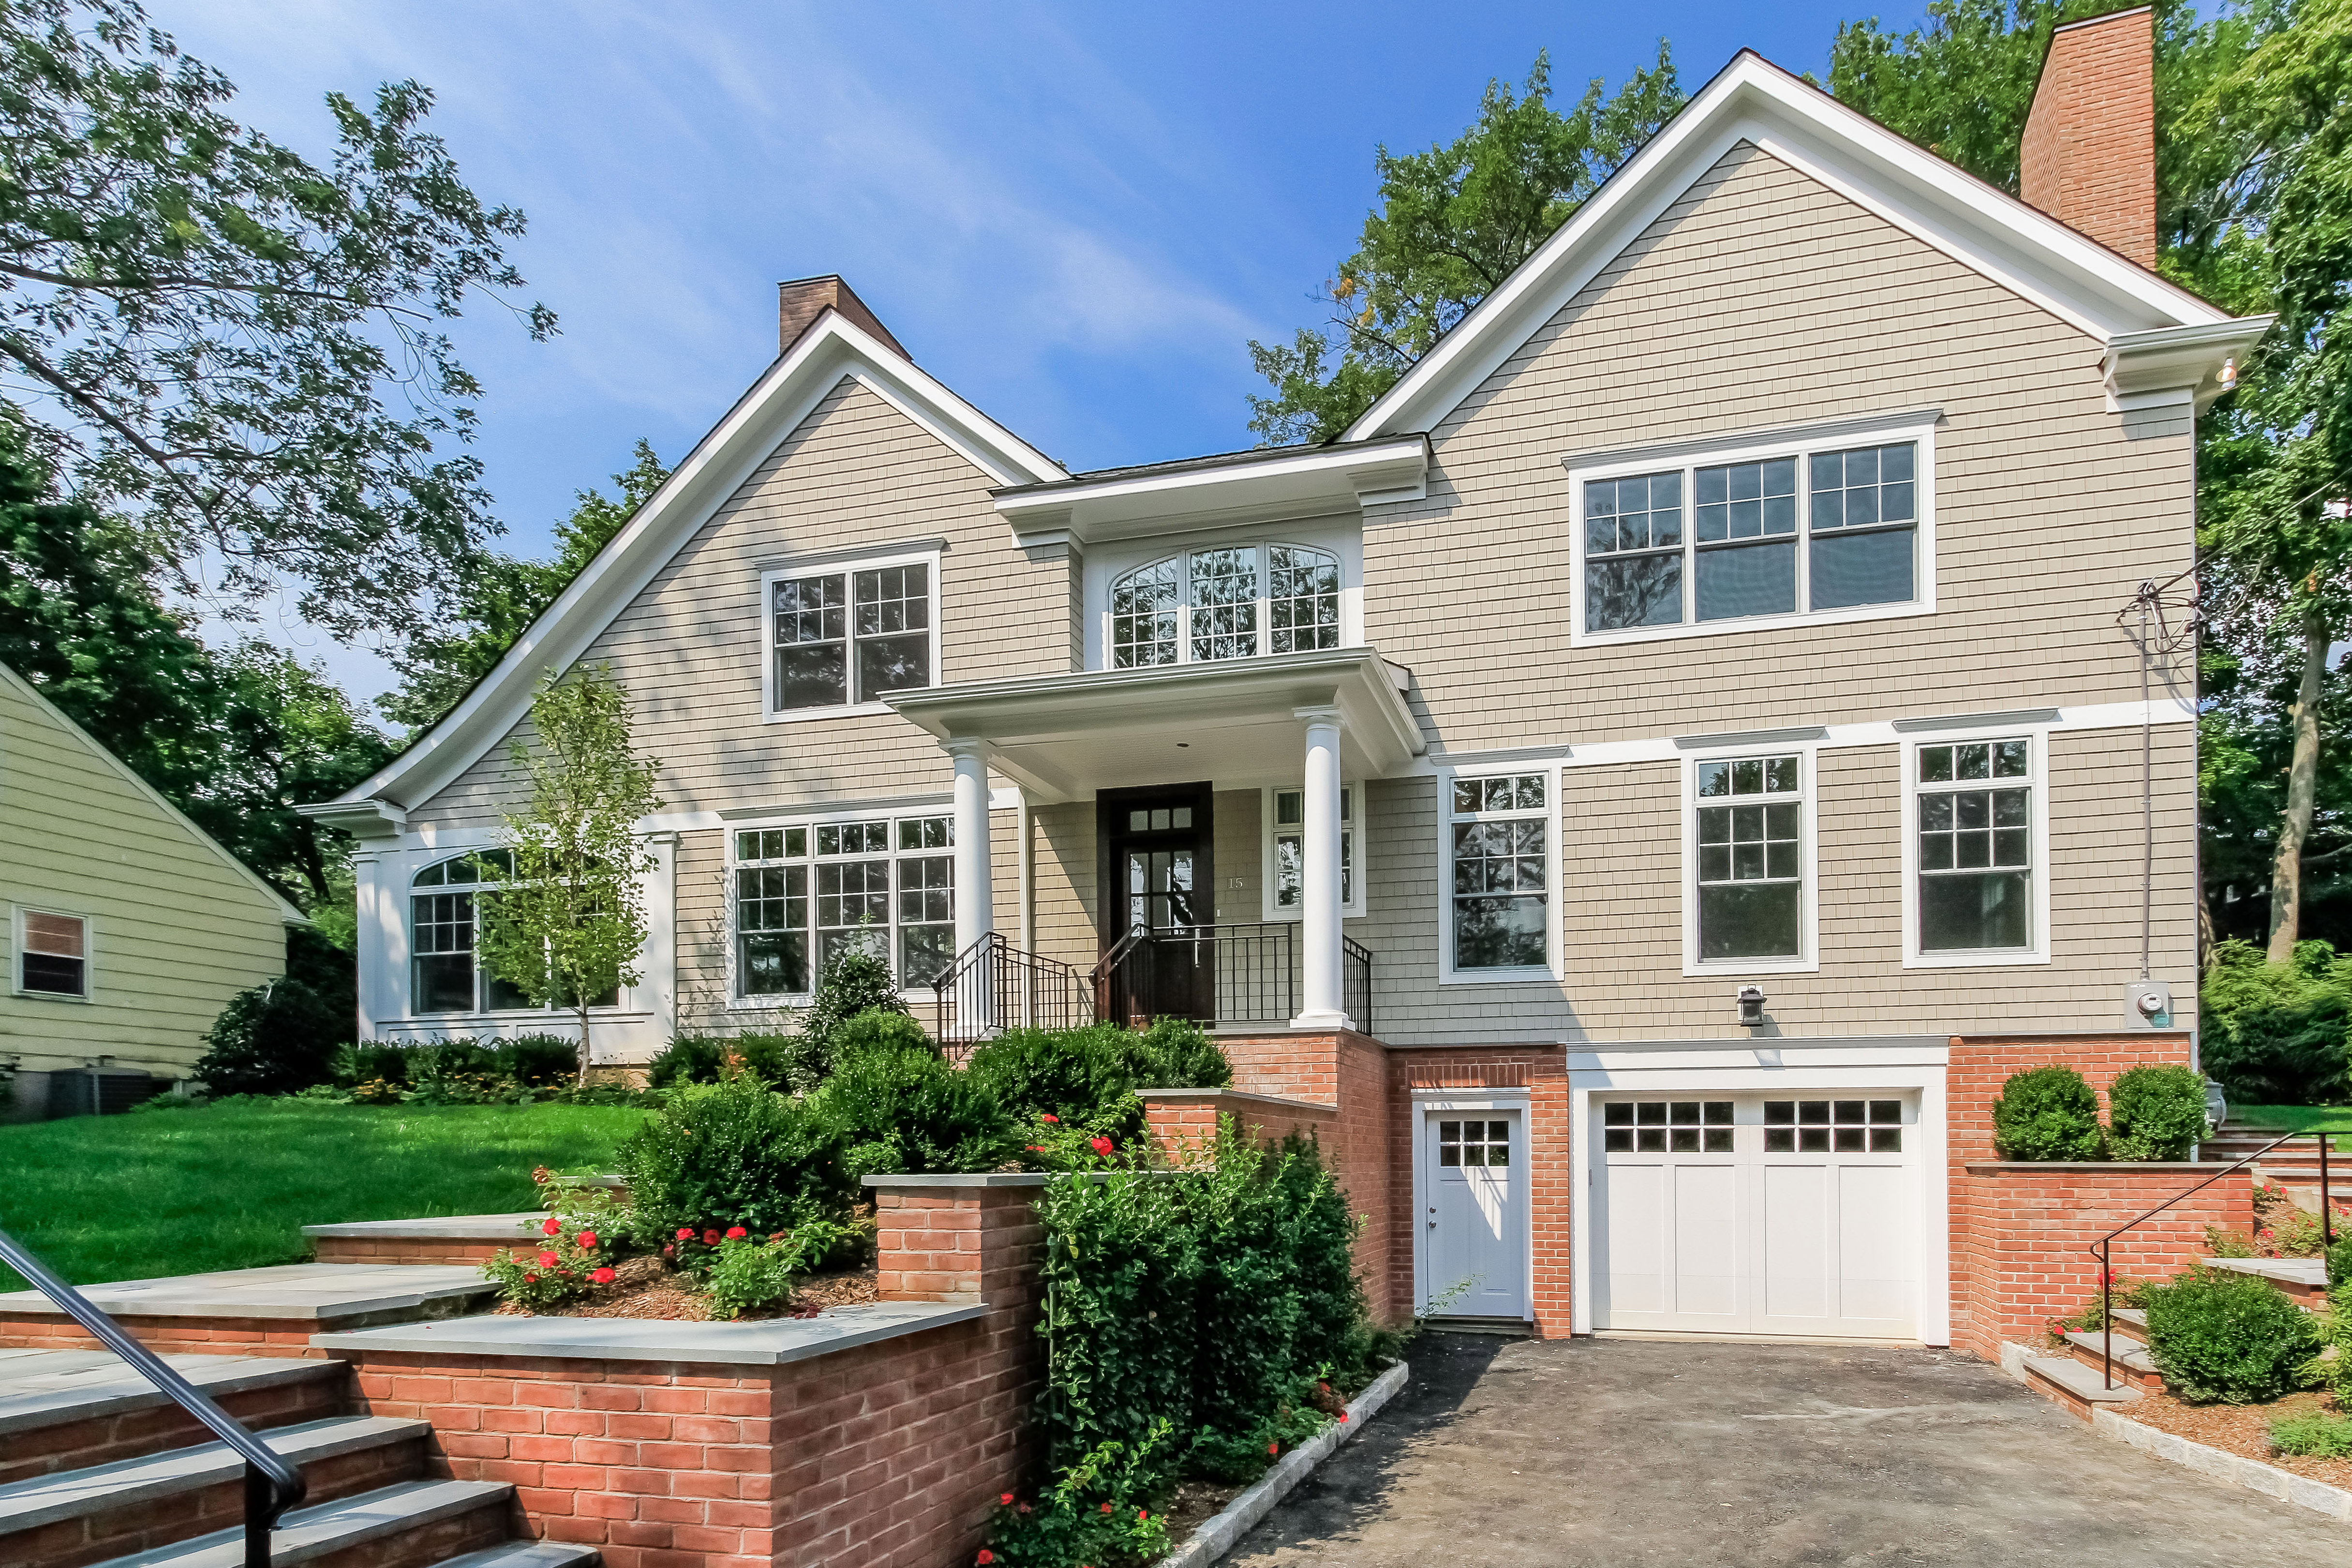 Single Family Home for Sale at Rye Gardens New Construction Home 15 Colby Avenue Rye, New York 10580 United States